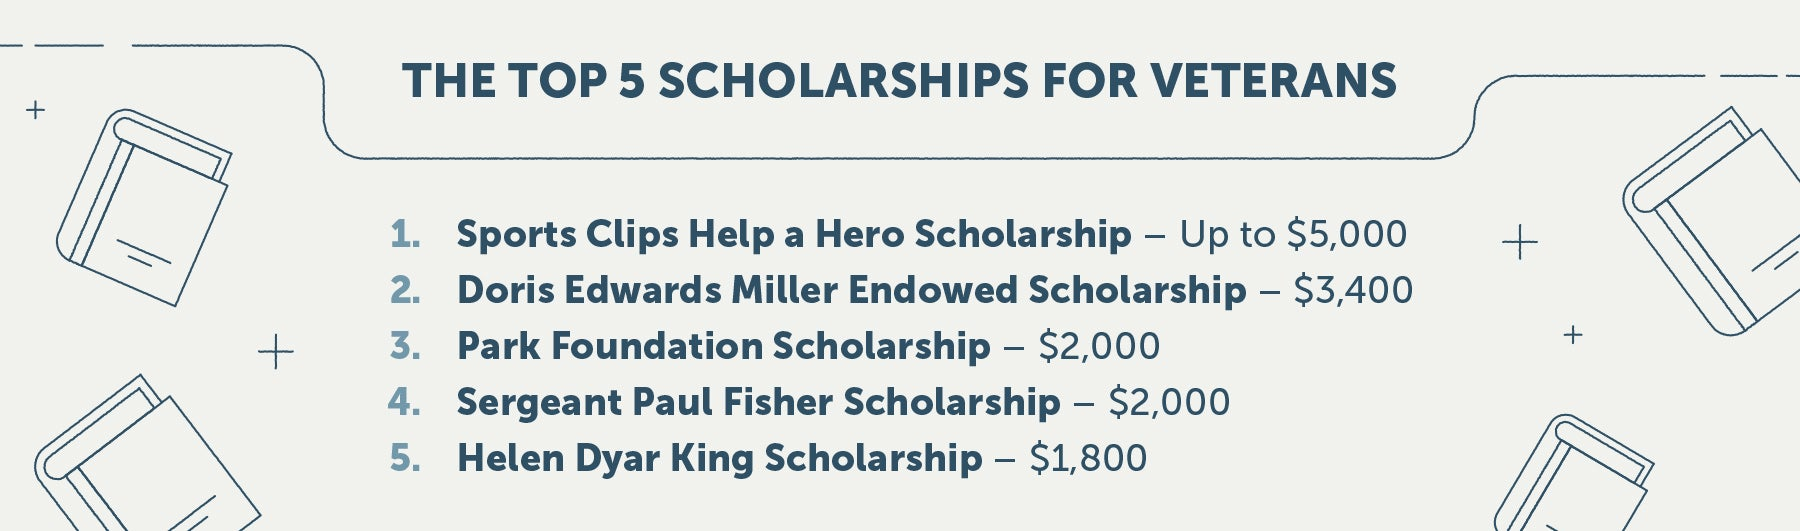 top 5 scholarships for vets